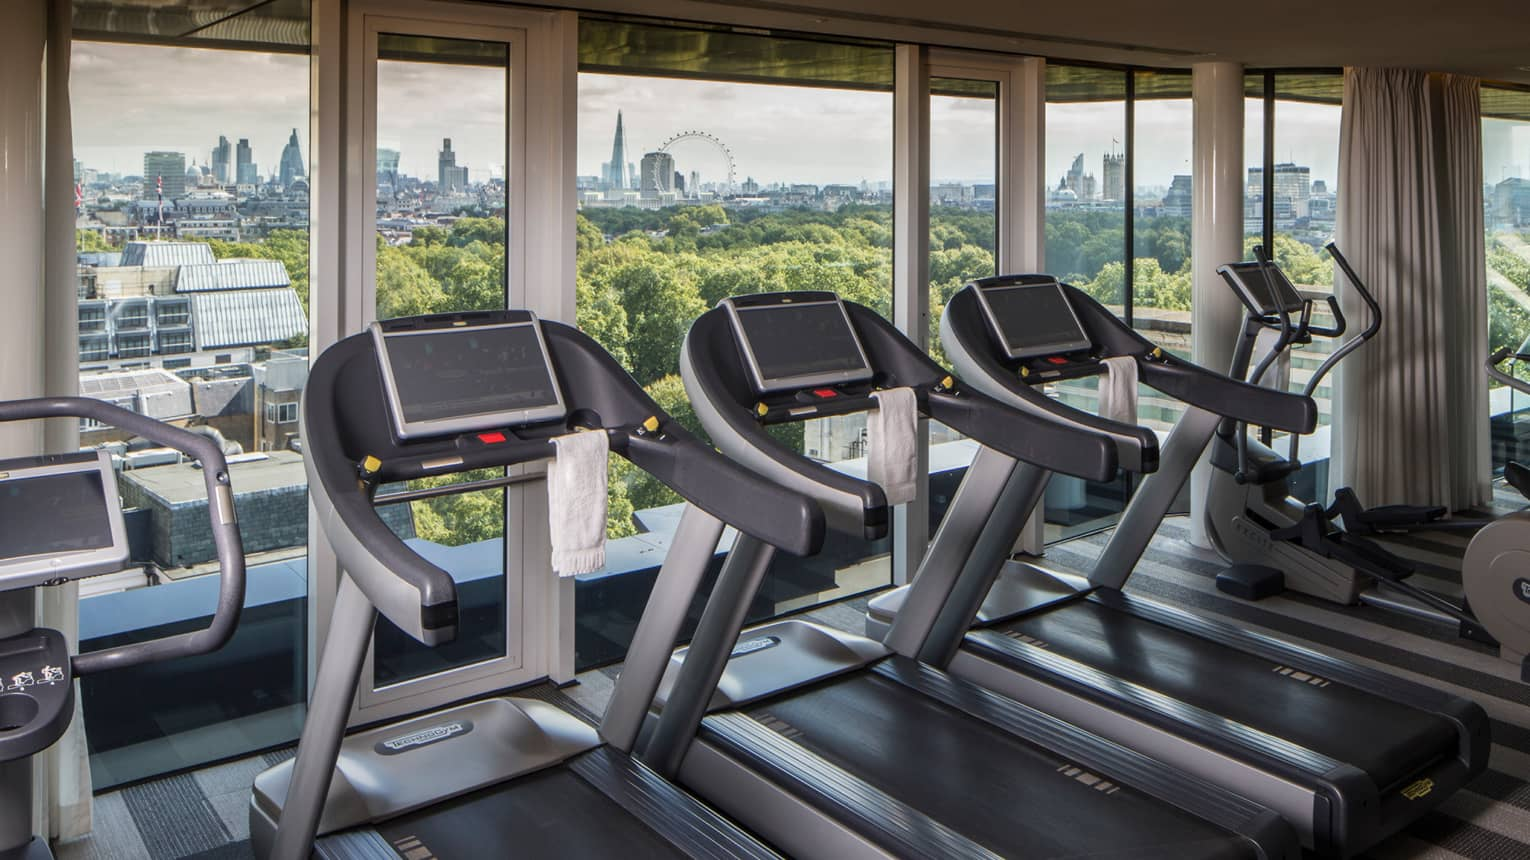 Fitness Centre treadmills in row by window with London skyline views